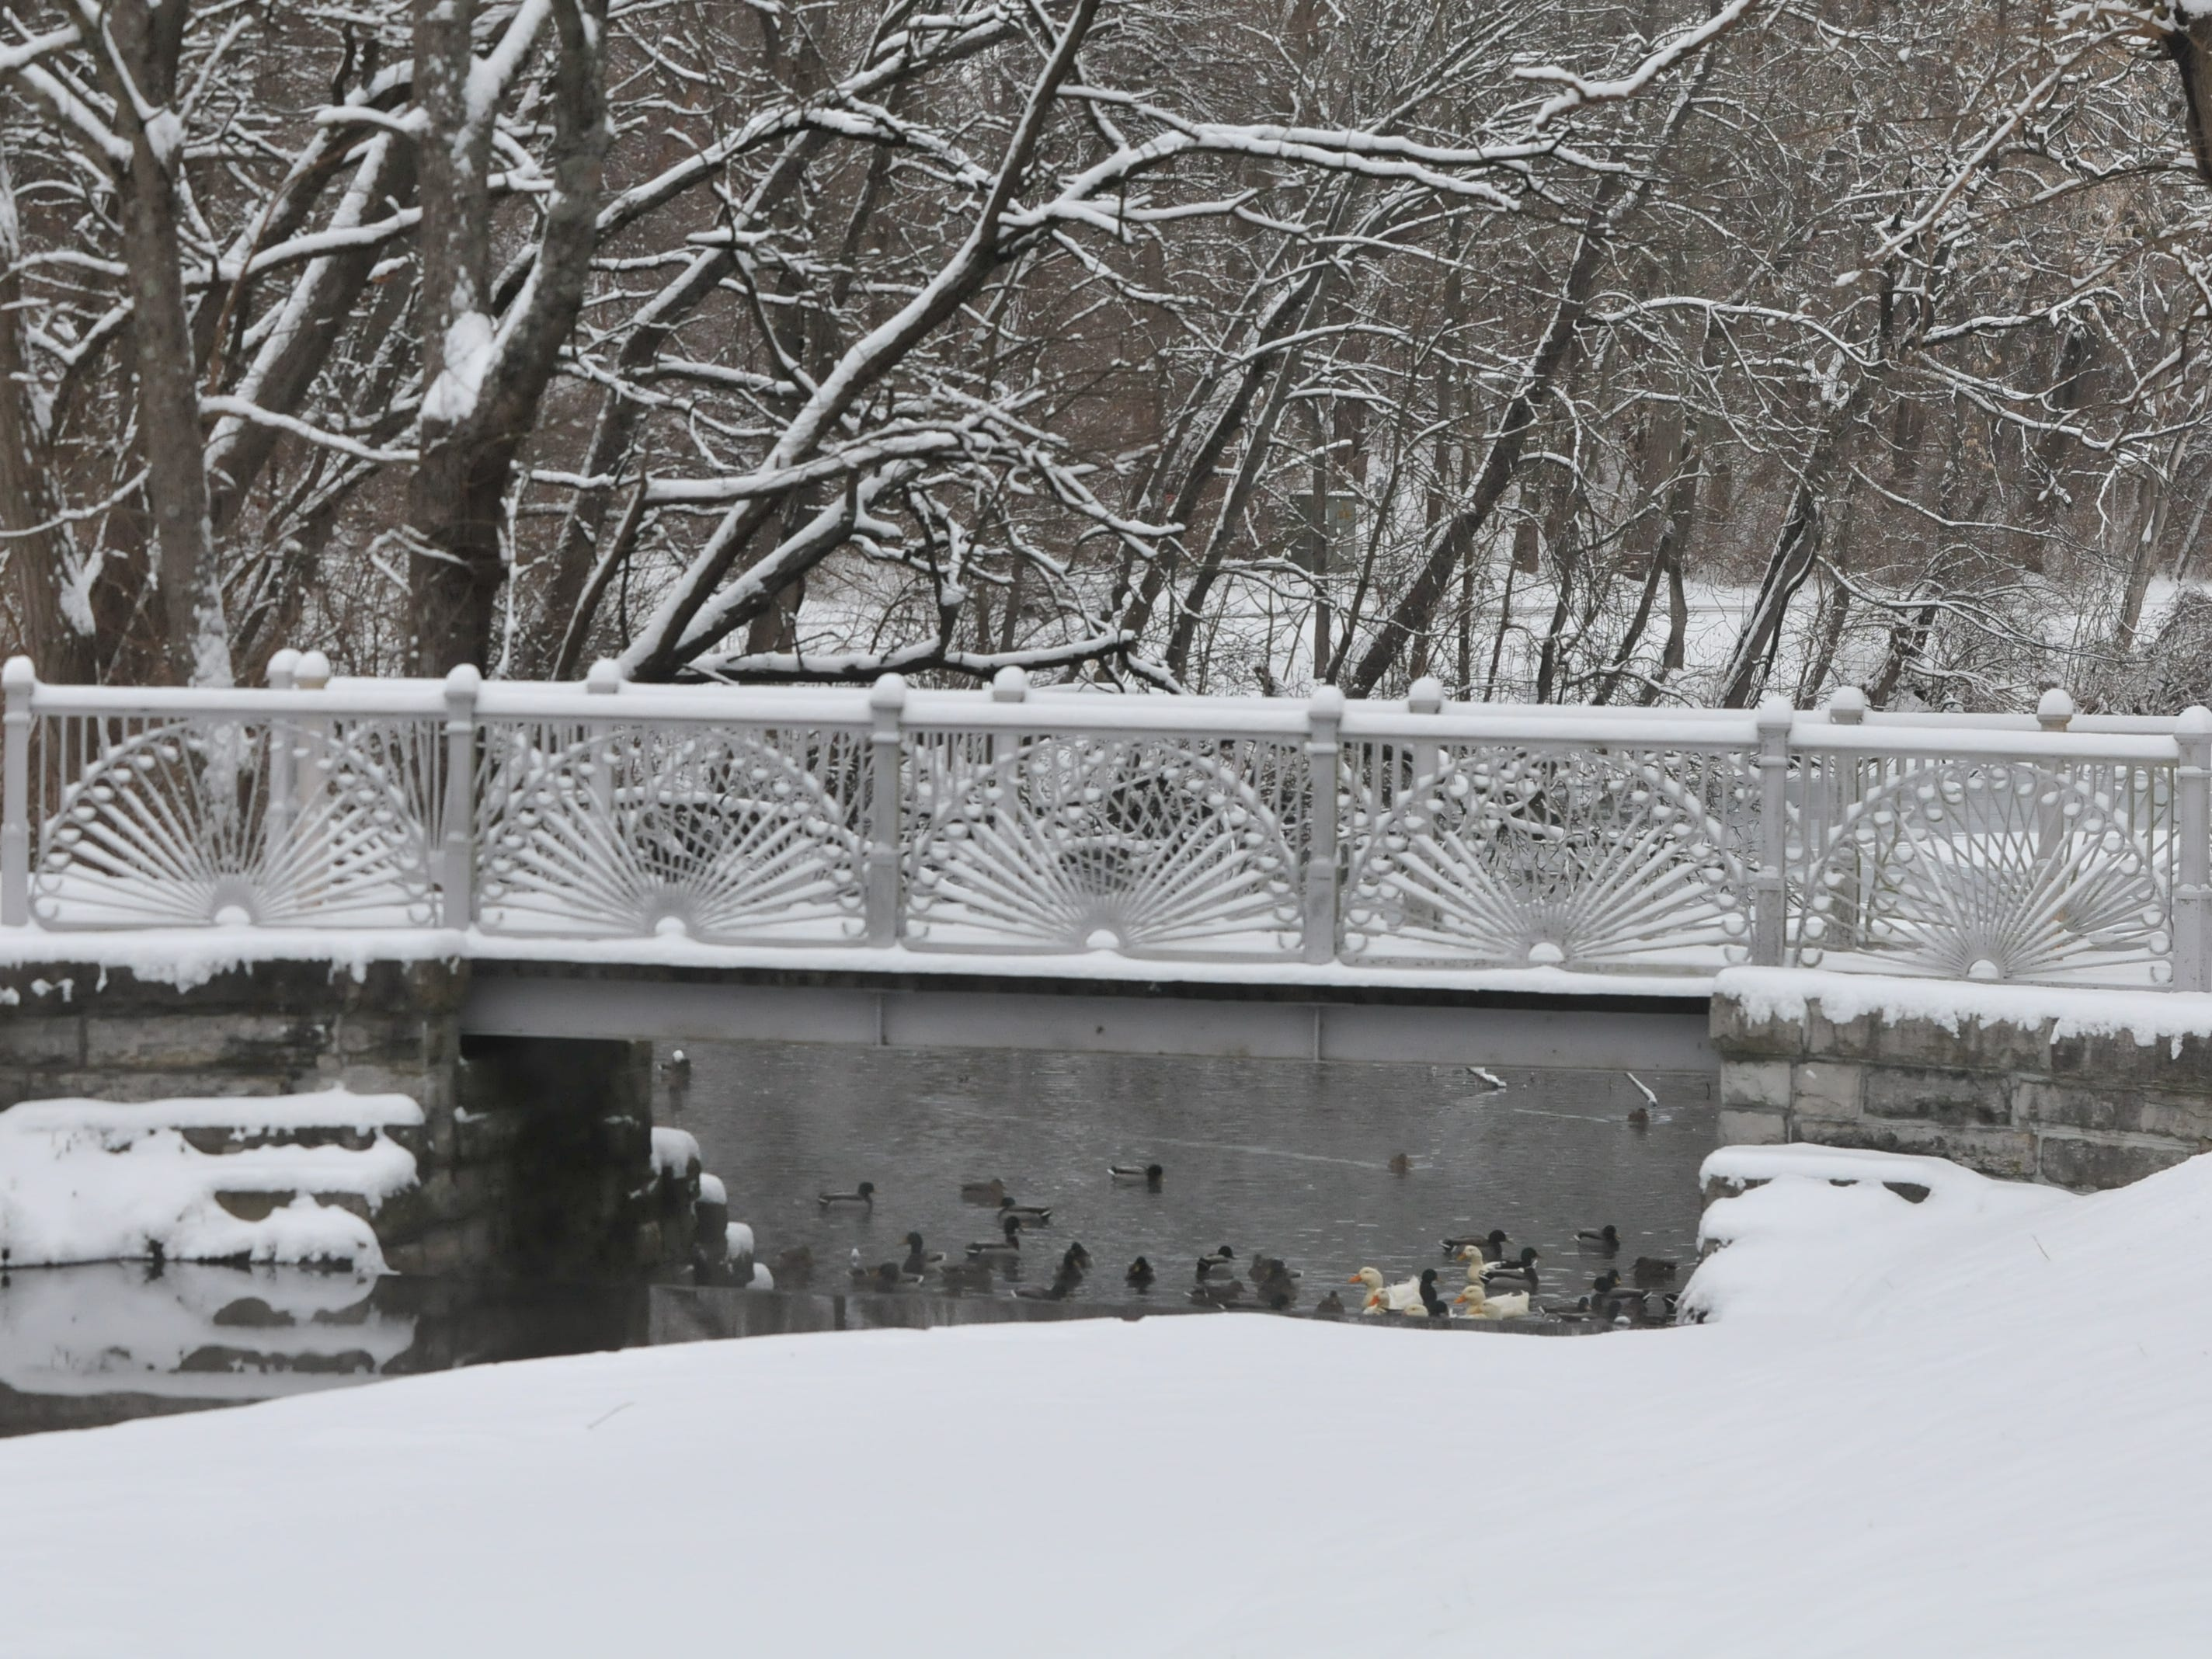 Snow covered the bridge at Glen Miller Park.